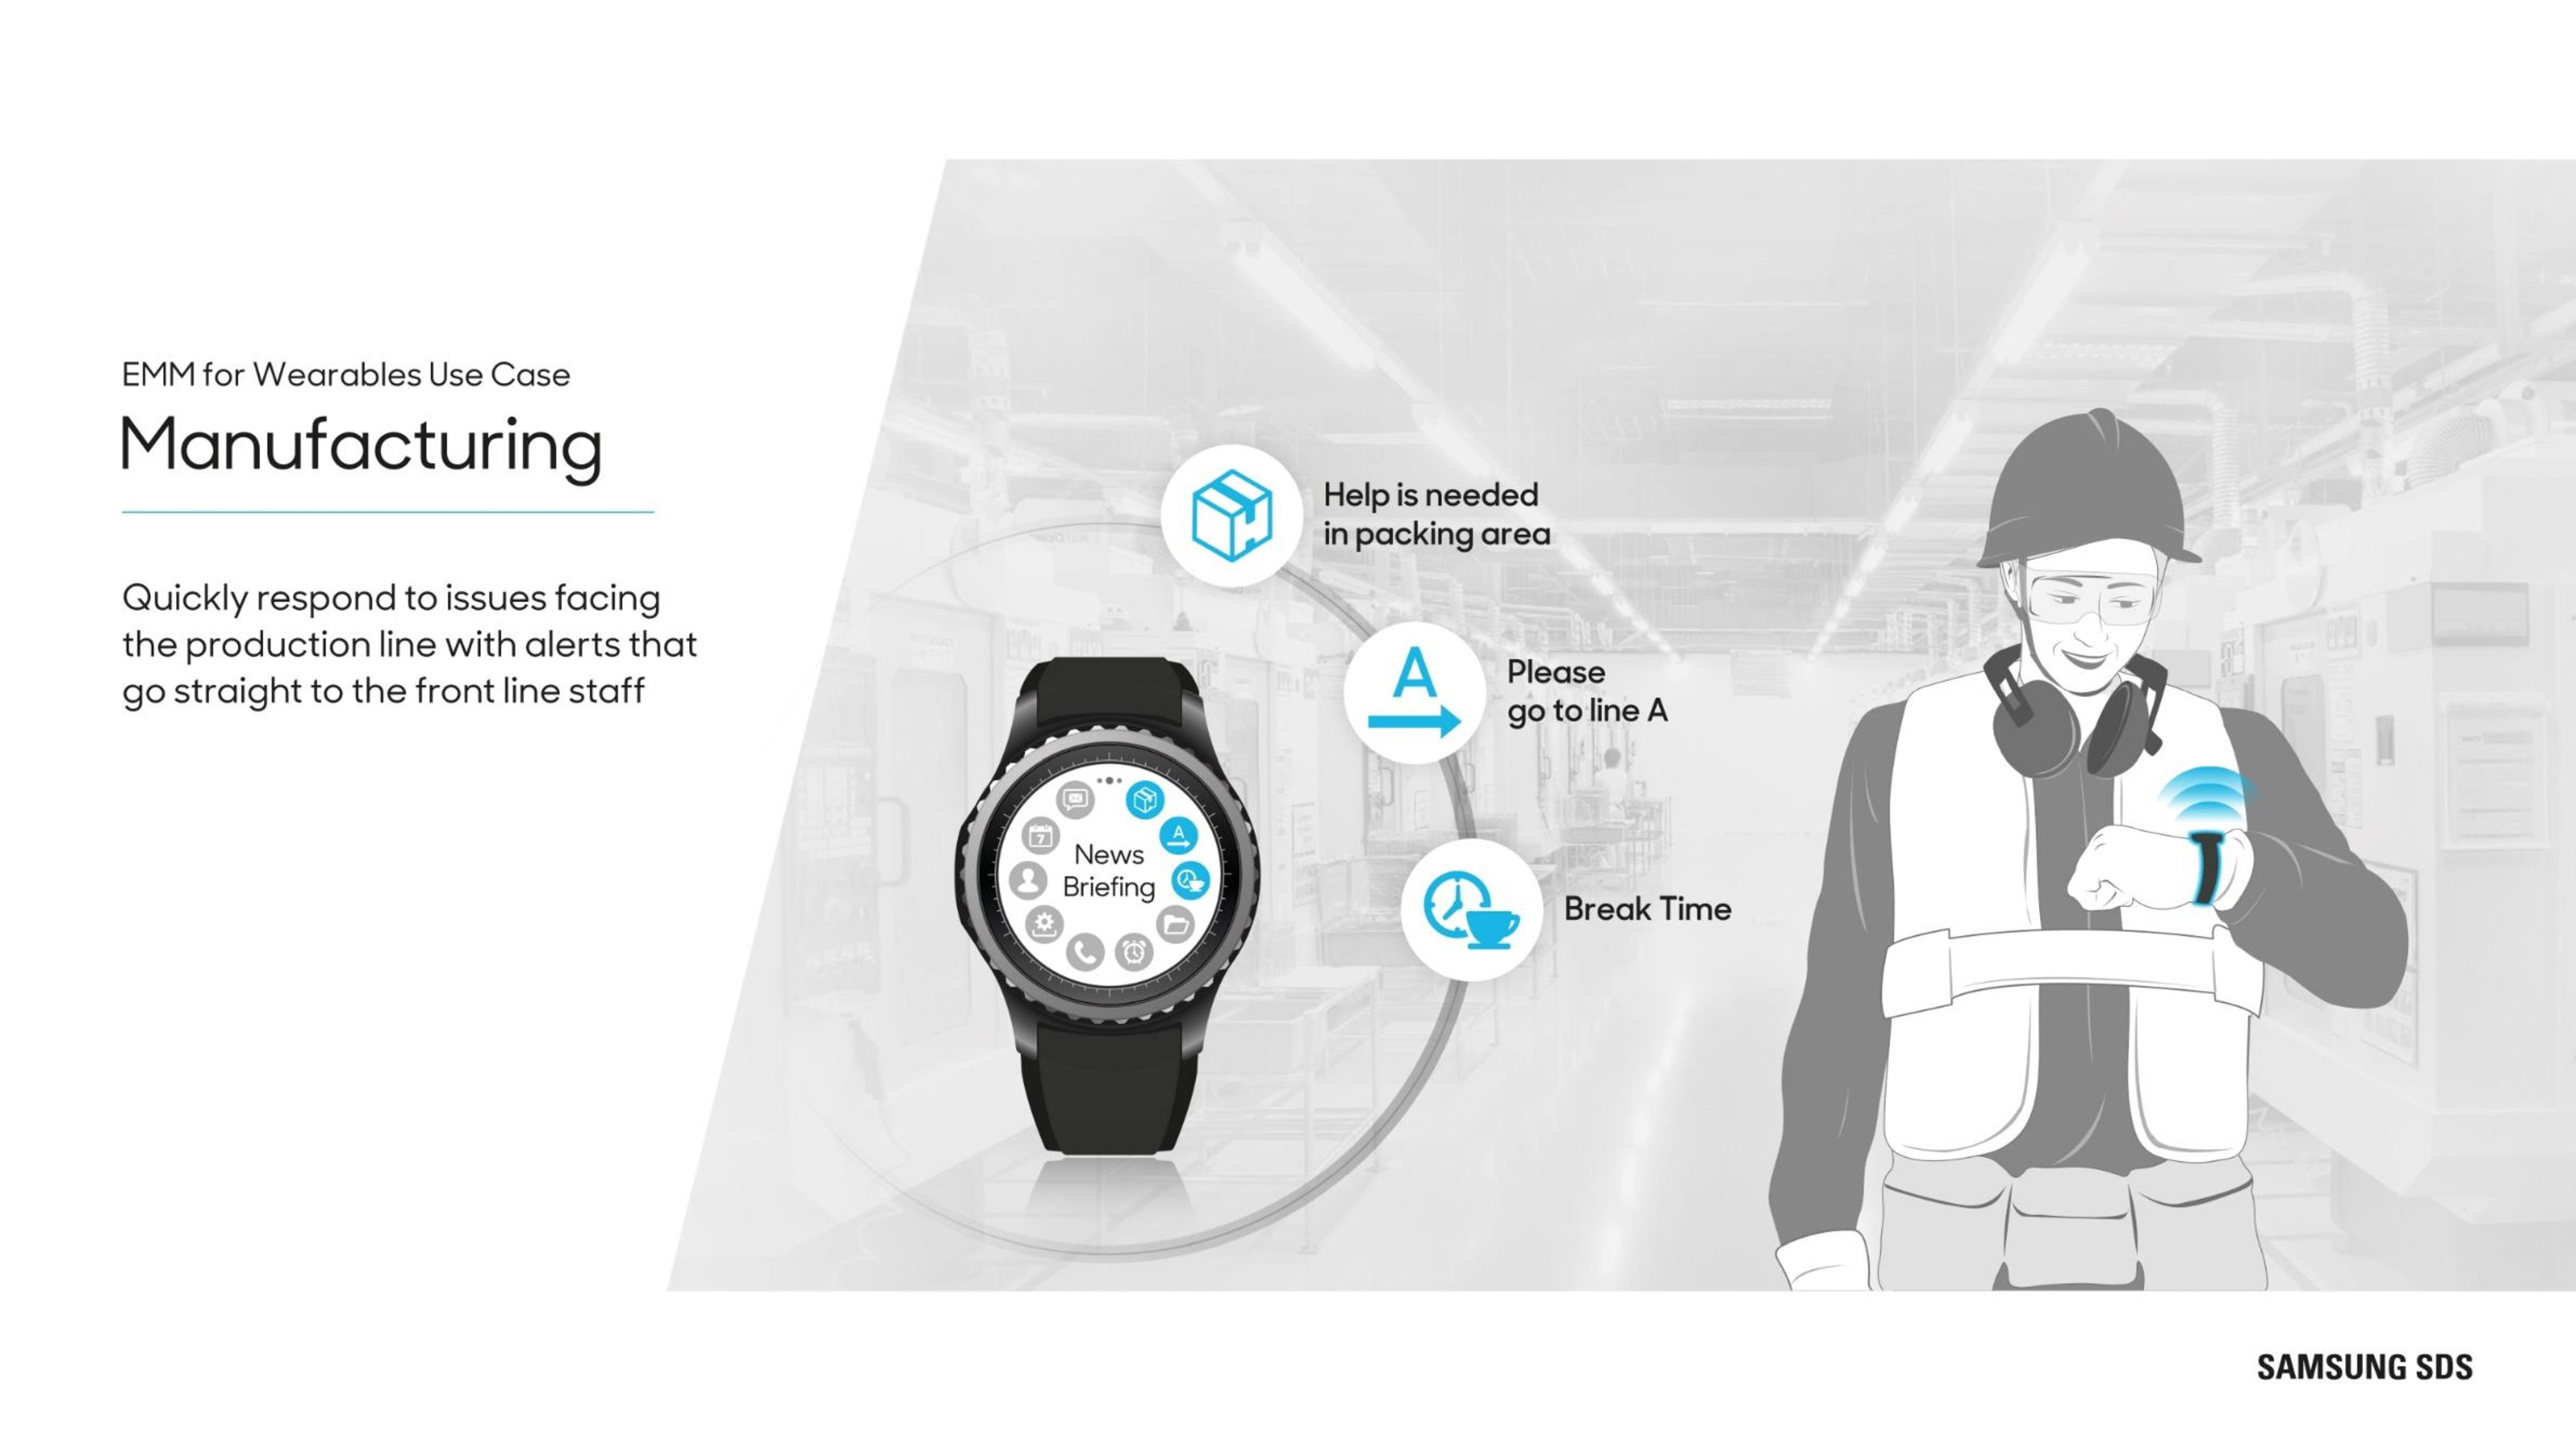 Wearables in Manufacturing Quickly respond to issues facing the production line with alerts that go straight to the front line staff